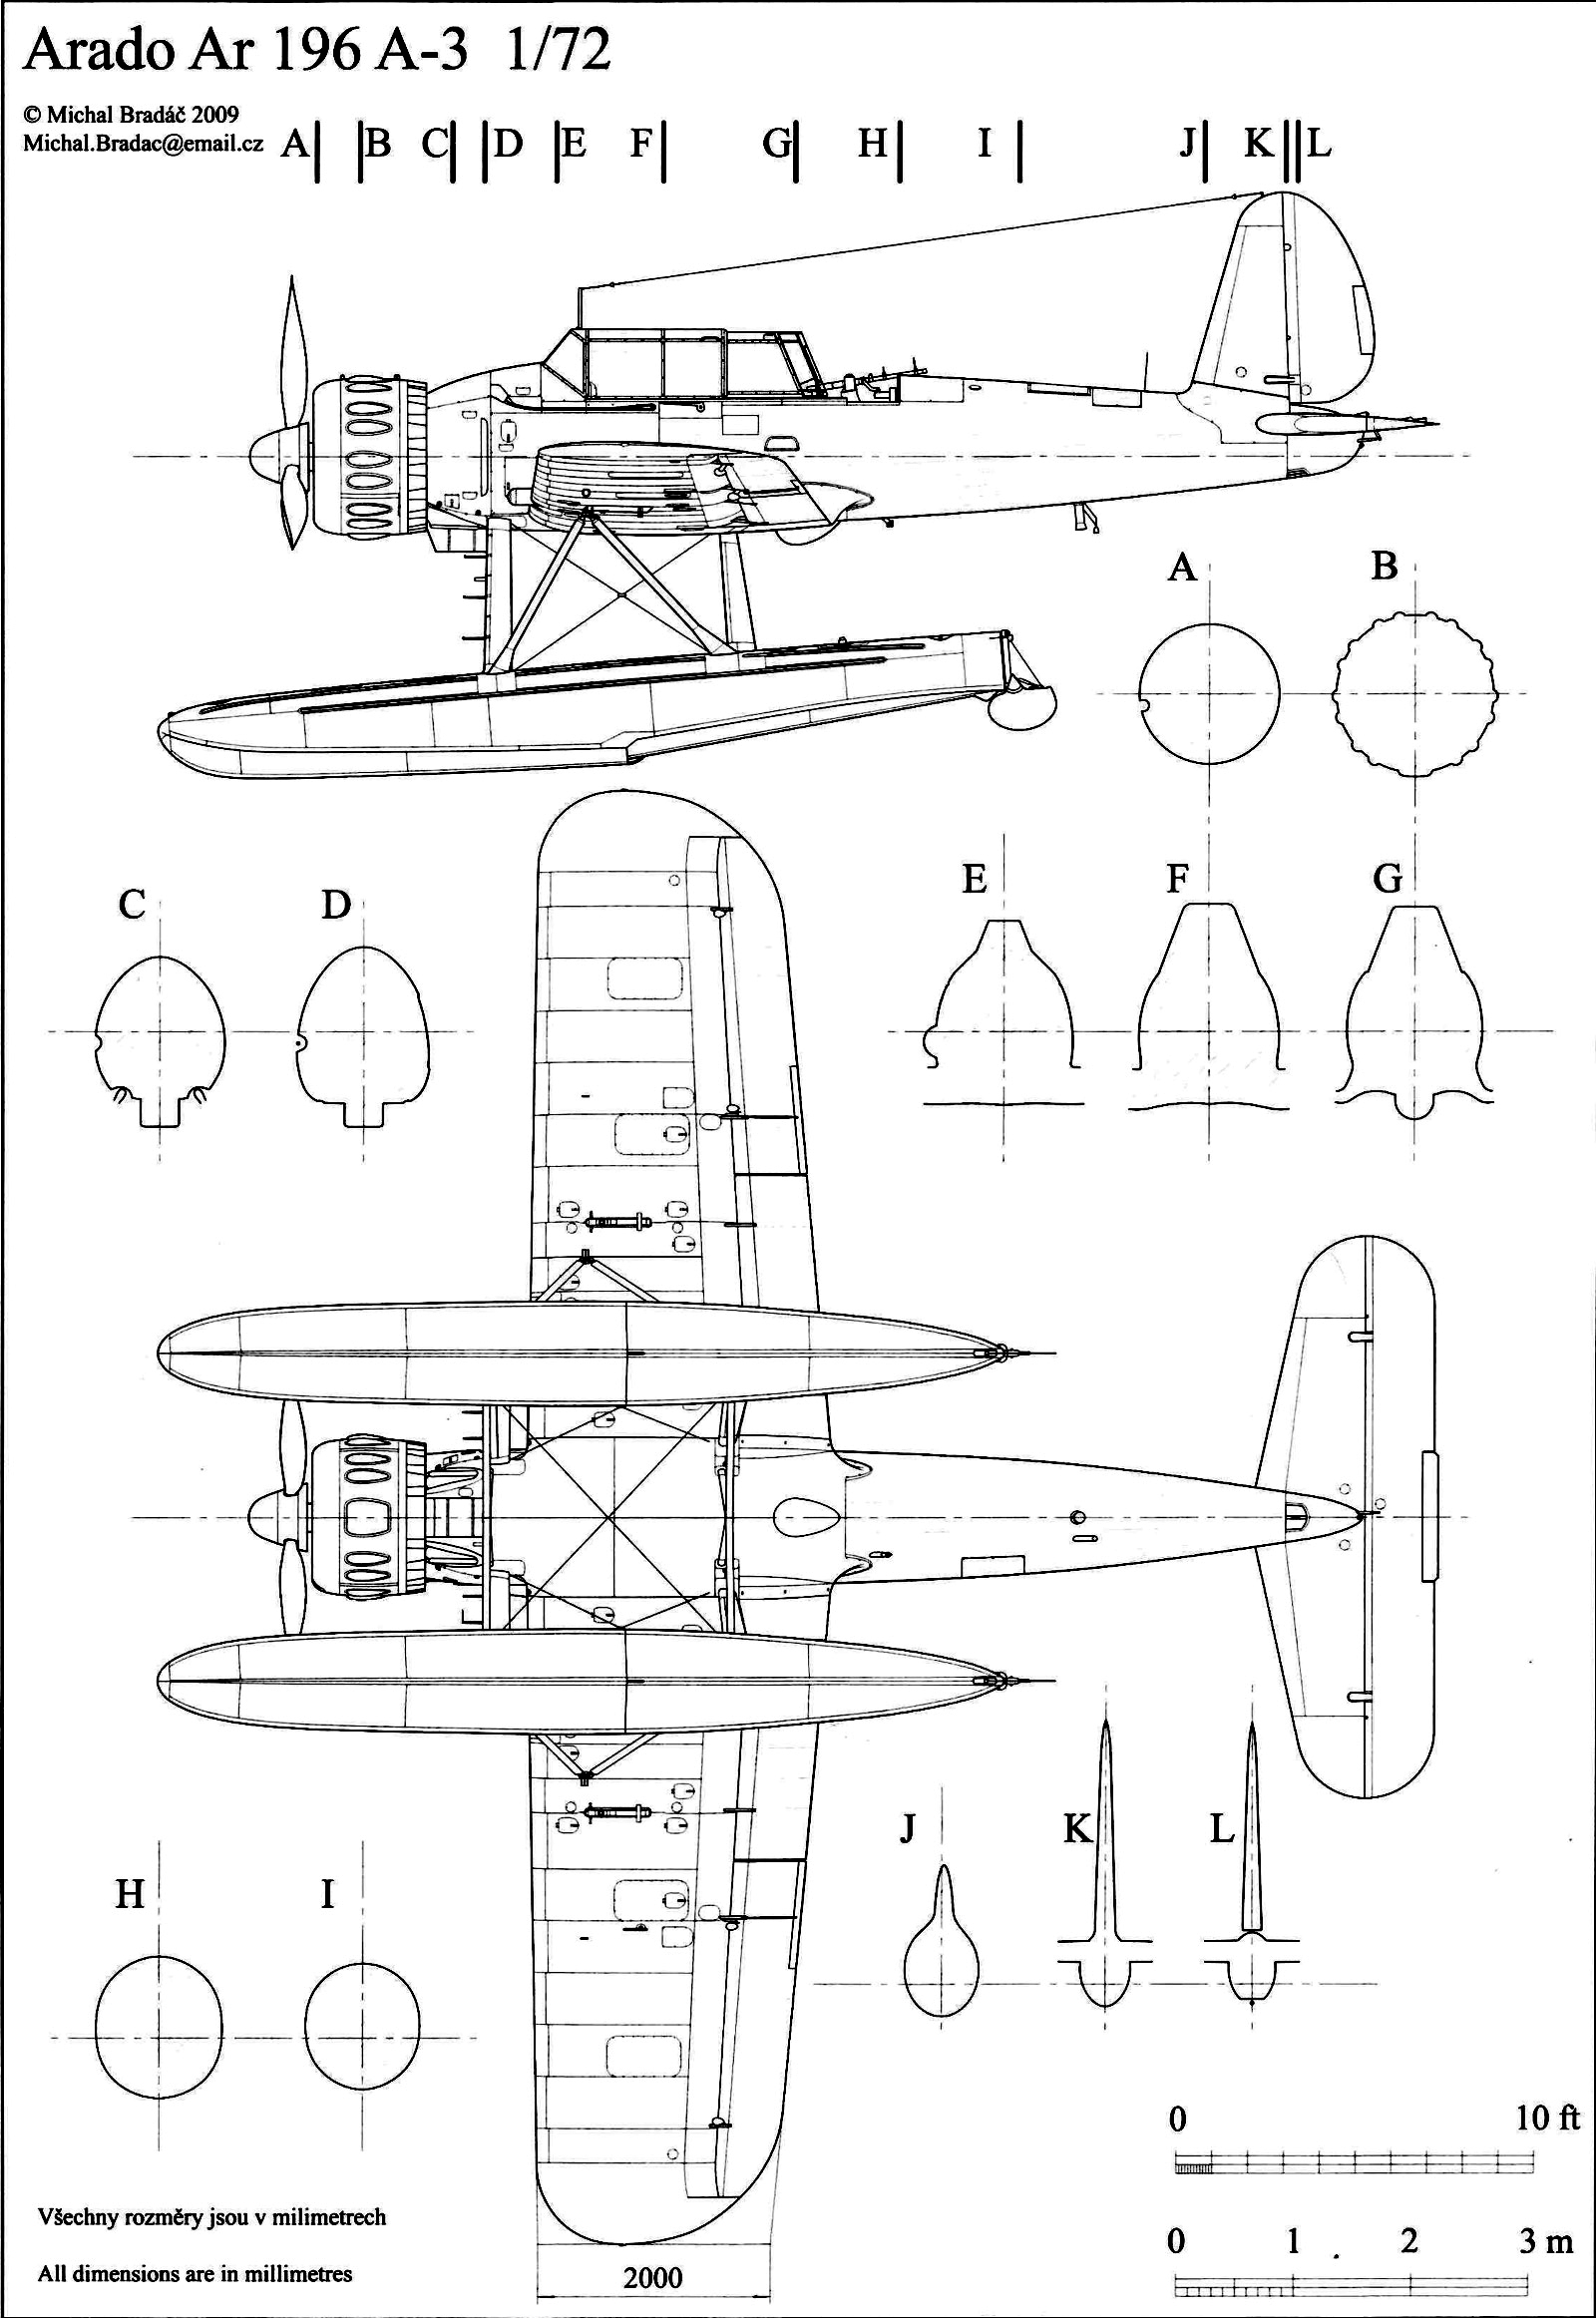 Aircraft Technical Drawing Of Arado Ar 196a3 In 1 72 Scale By Michal Bradac 0a